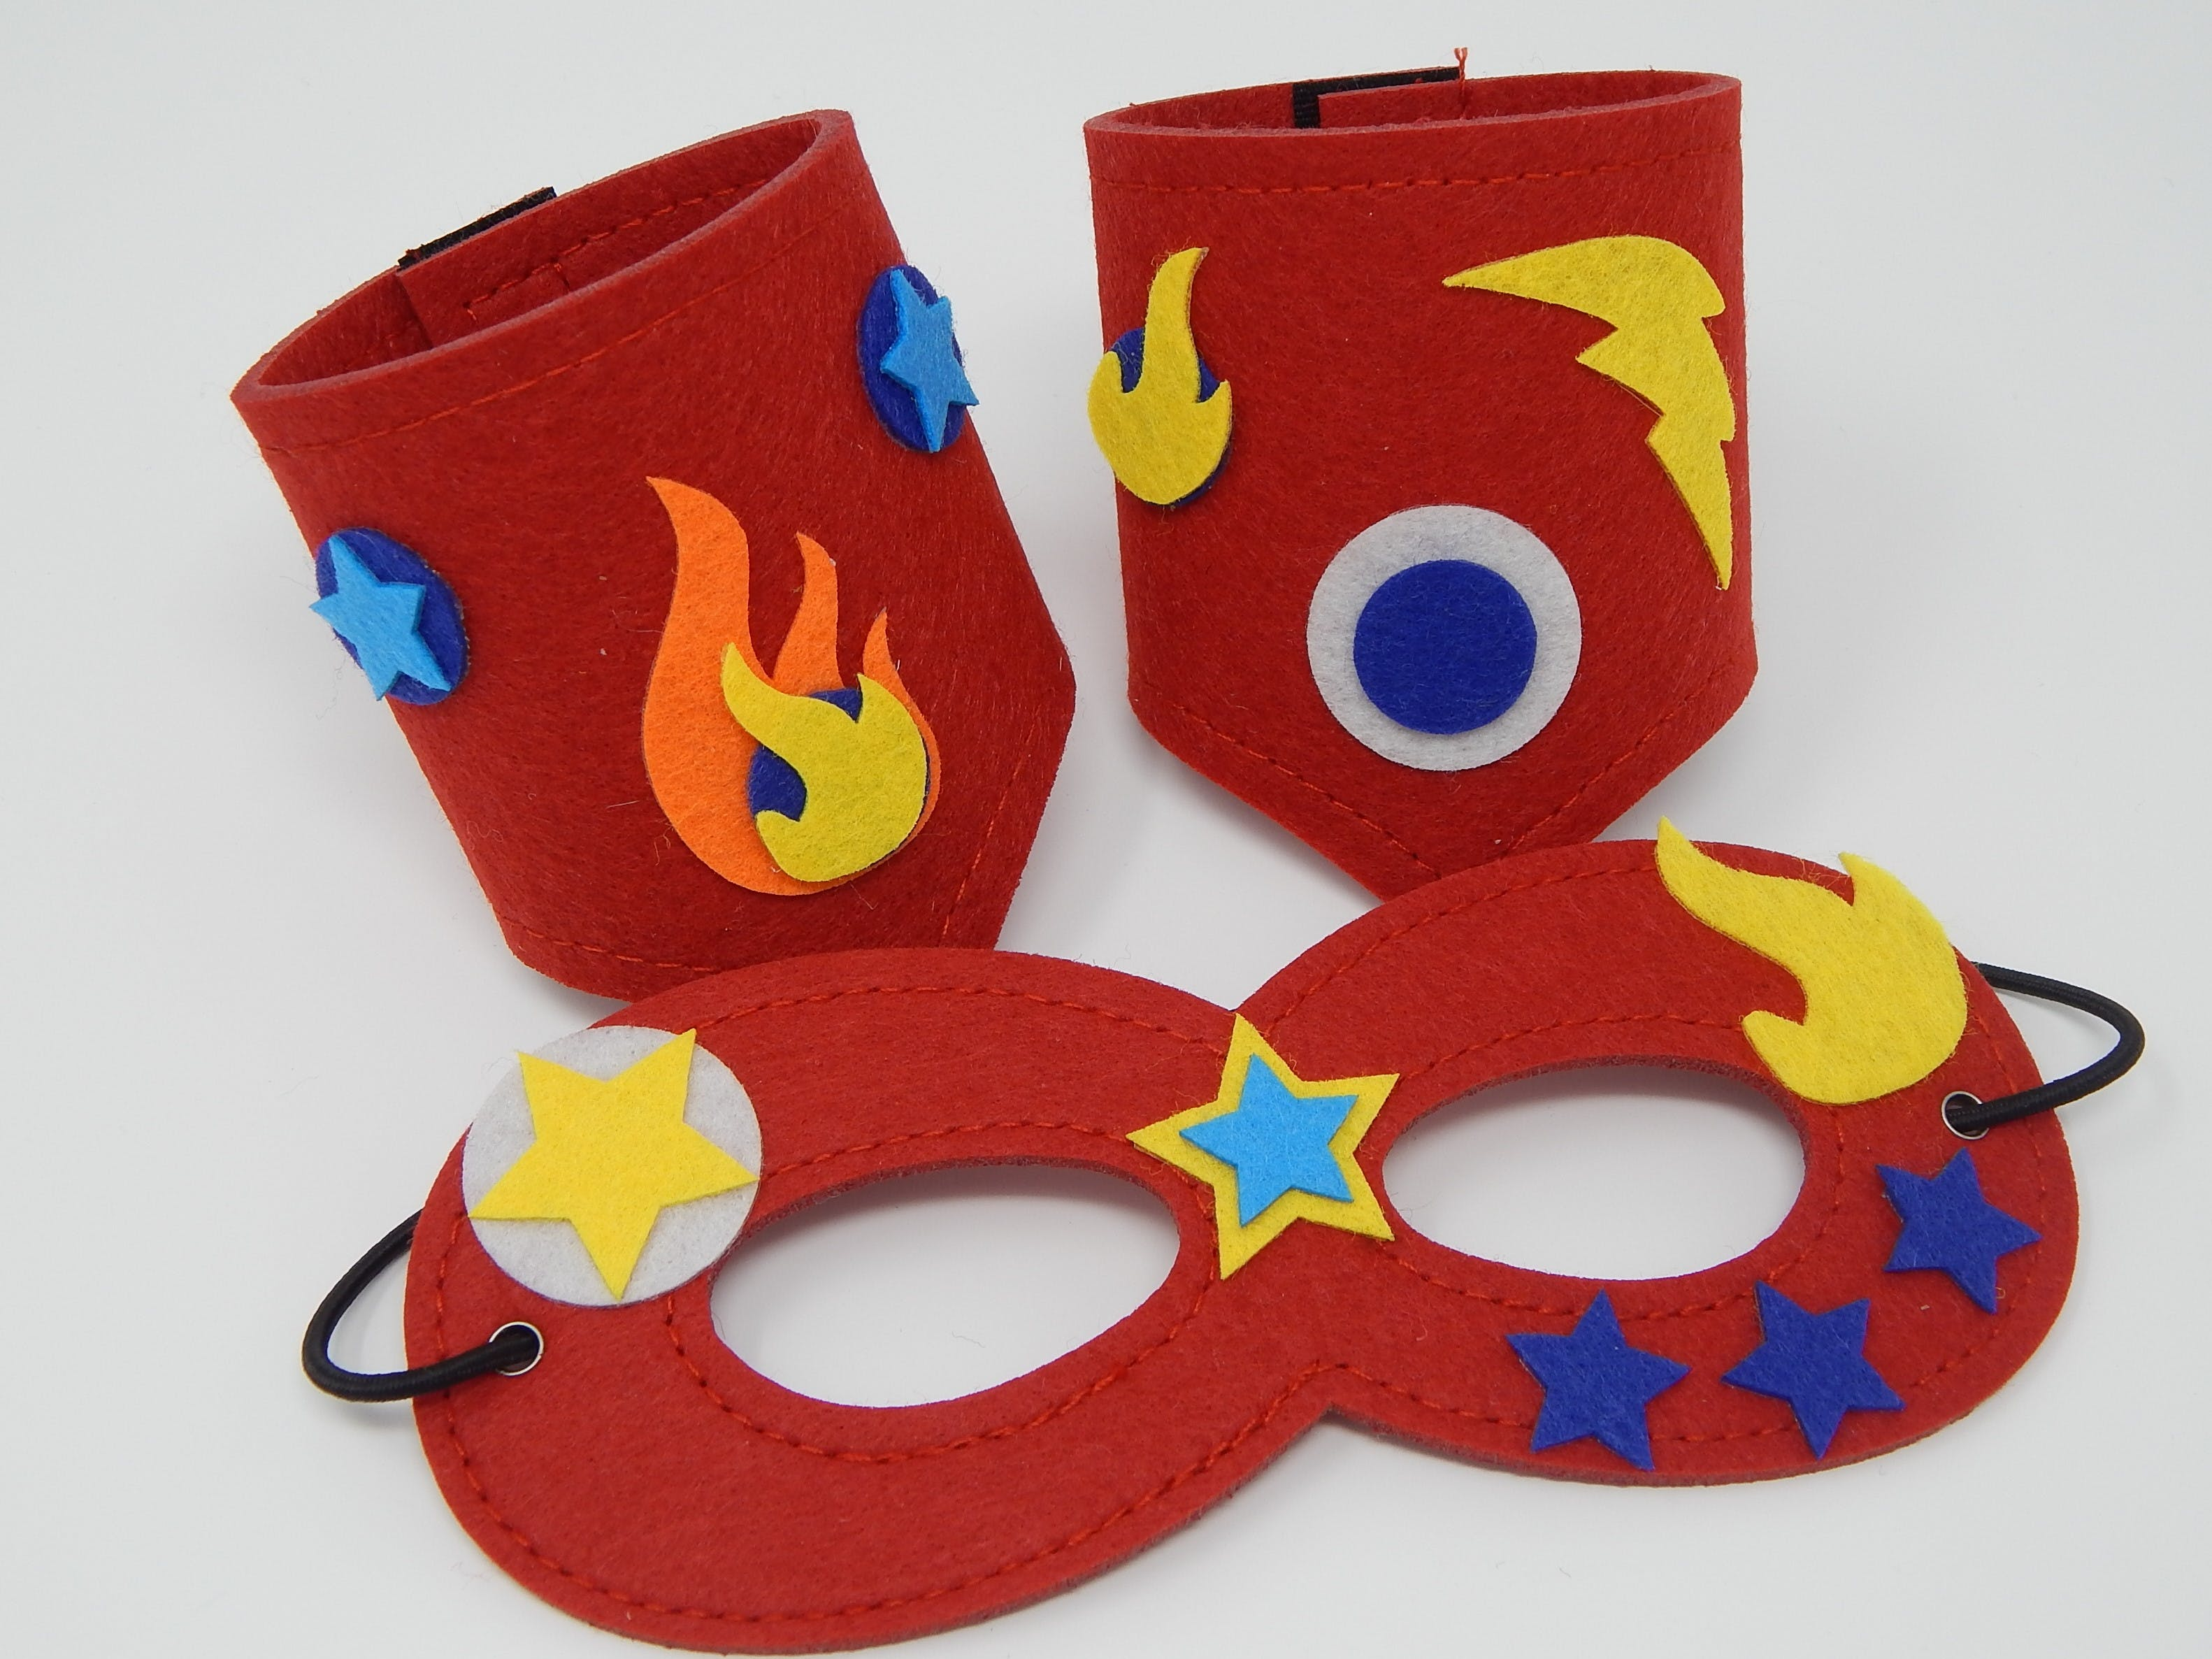 Superhero Mask & Cuffs Craft Kit - I DID IT!